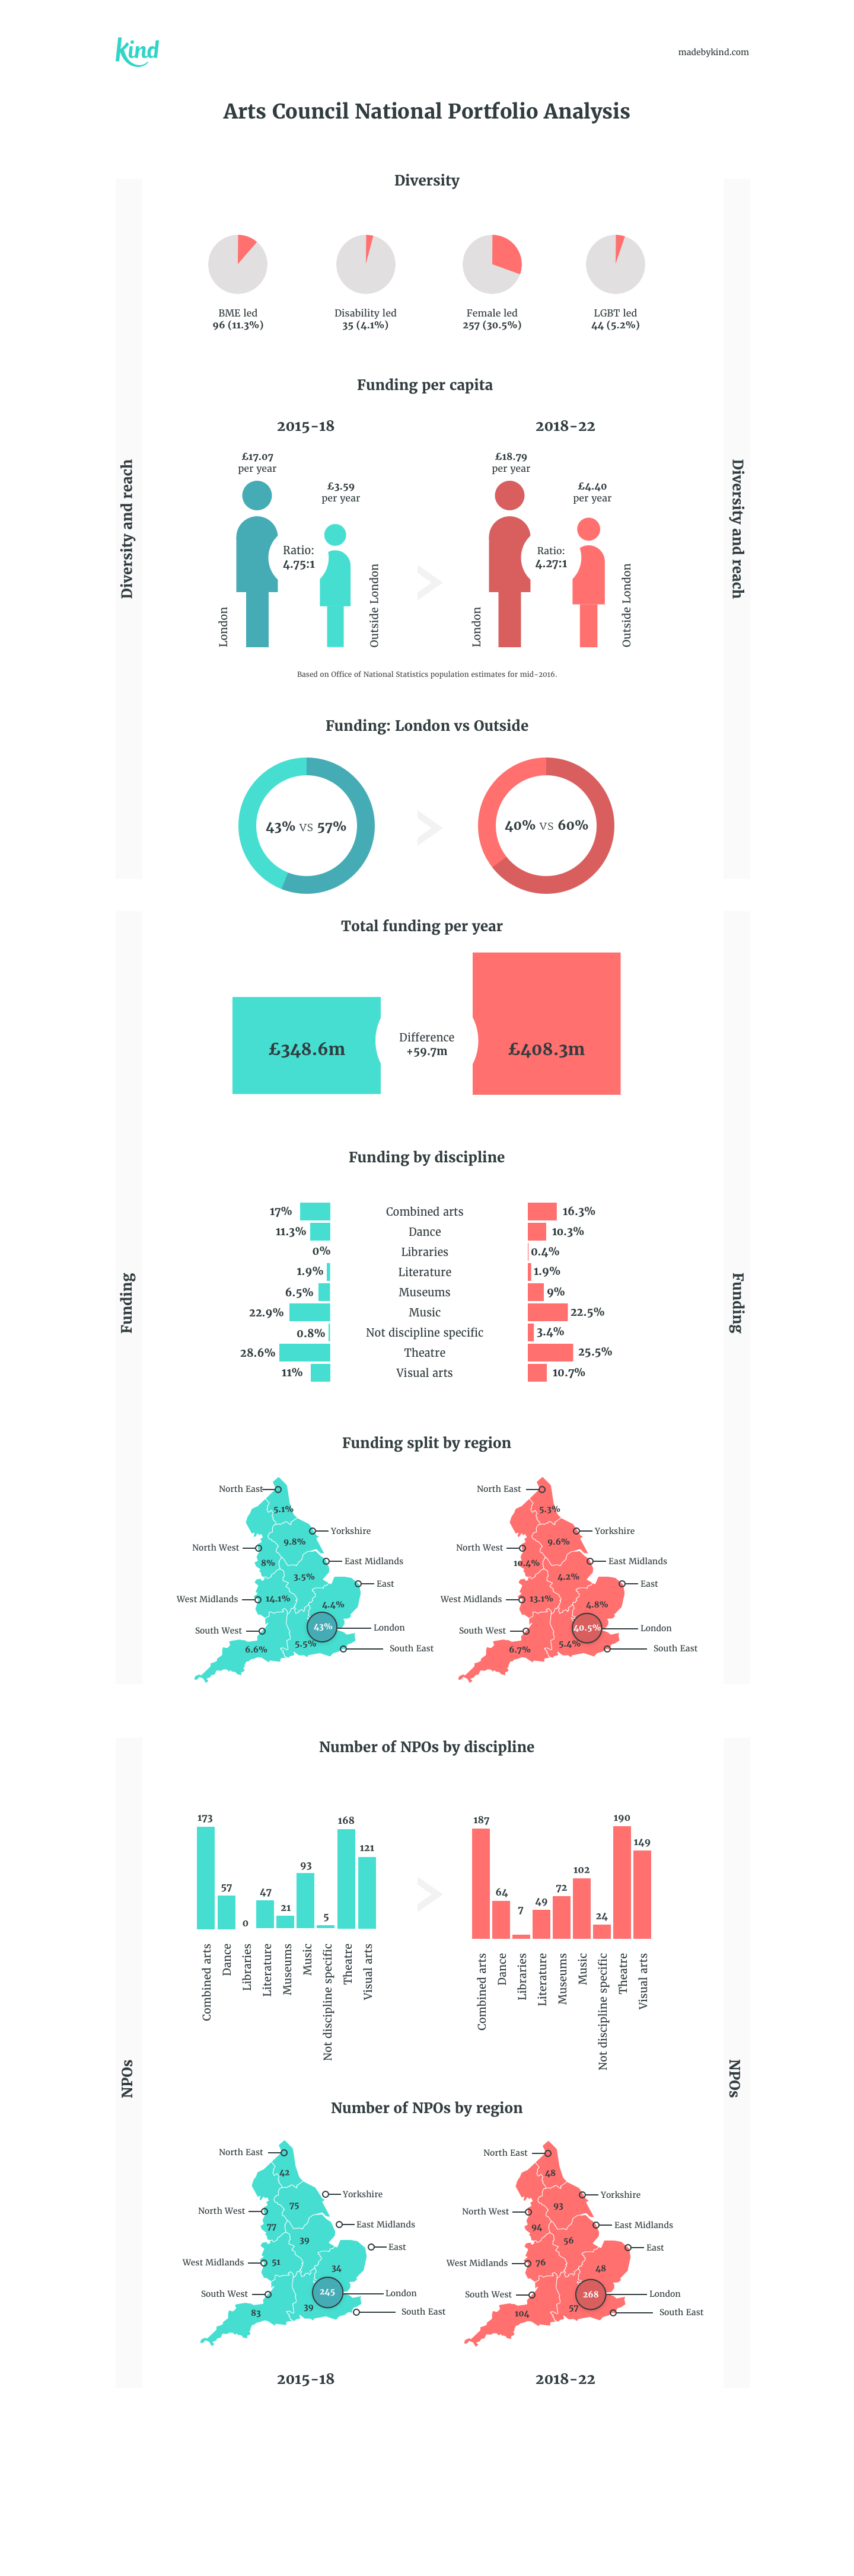 Arts Council Portfolio analysis infographic by Kind